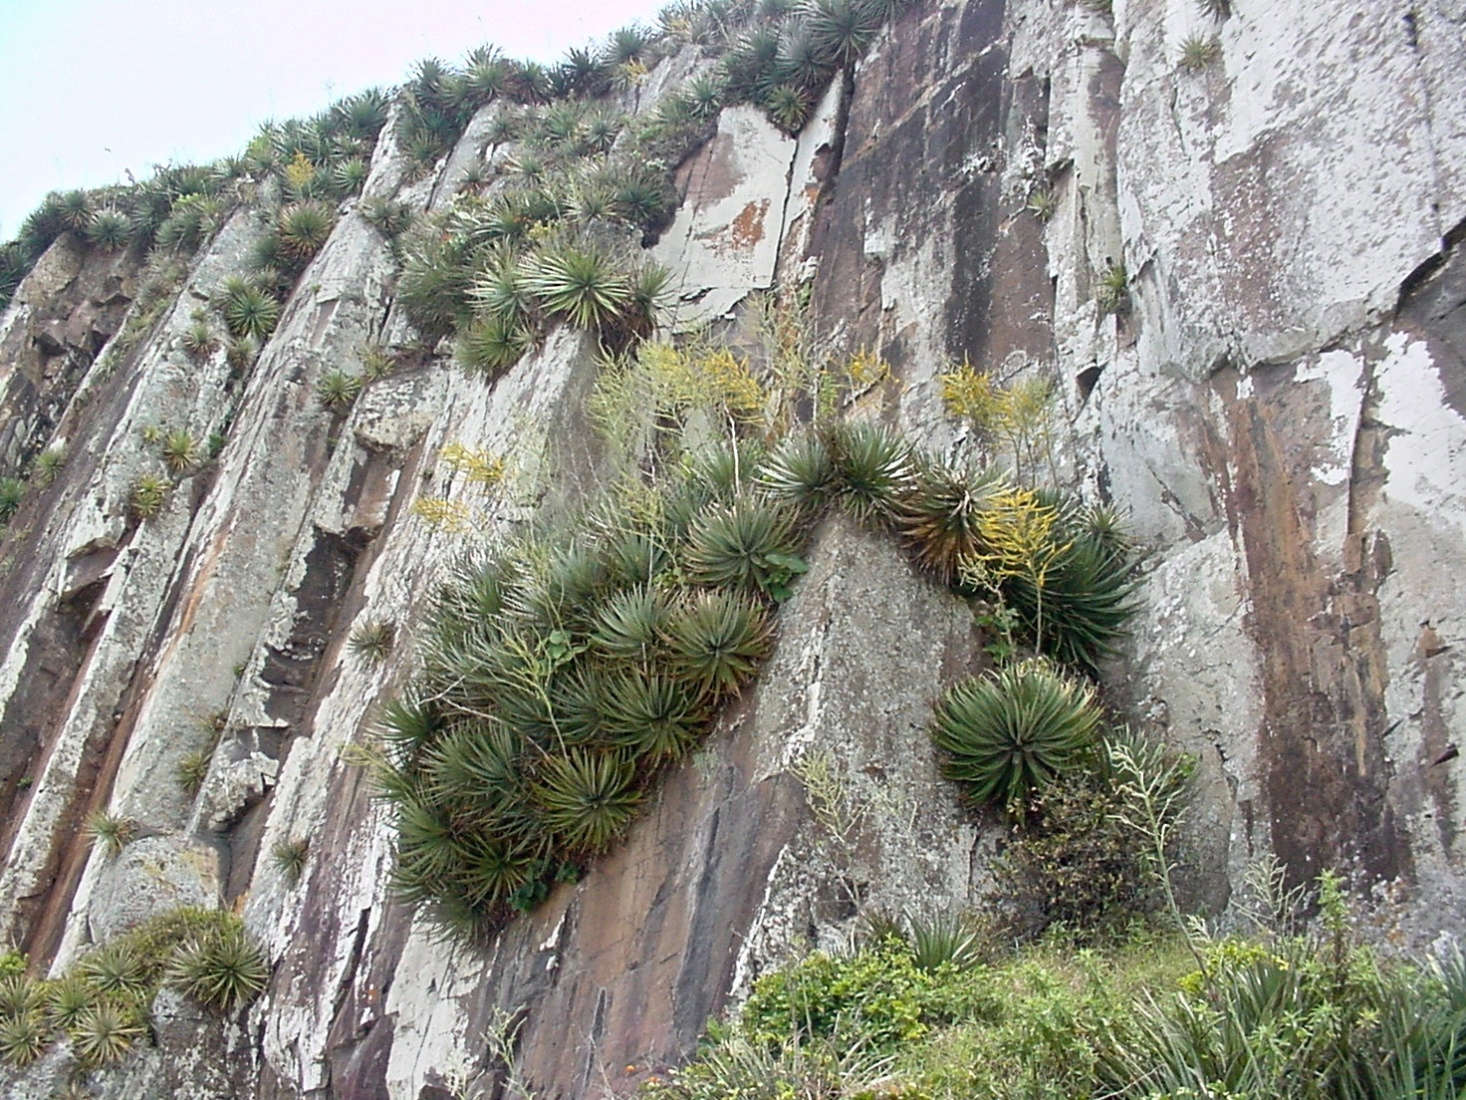 Dyckia maritima grows in rocky crevices on cliffs in Brazil. Photograph by Marcia Stefani via Flickr.